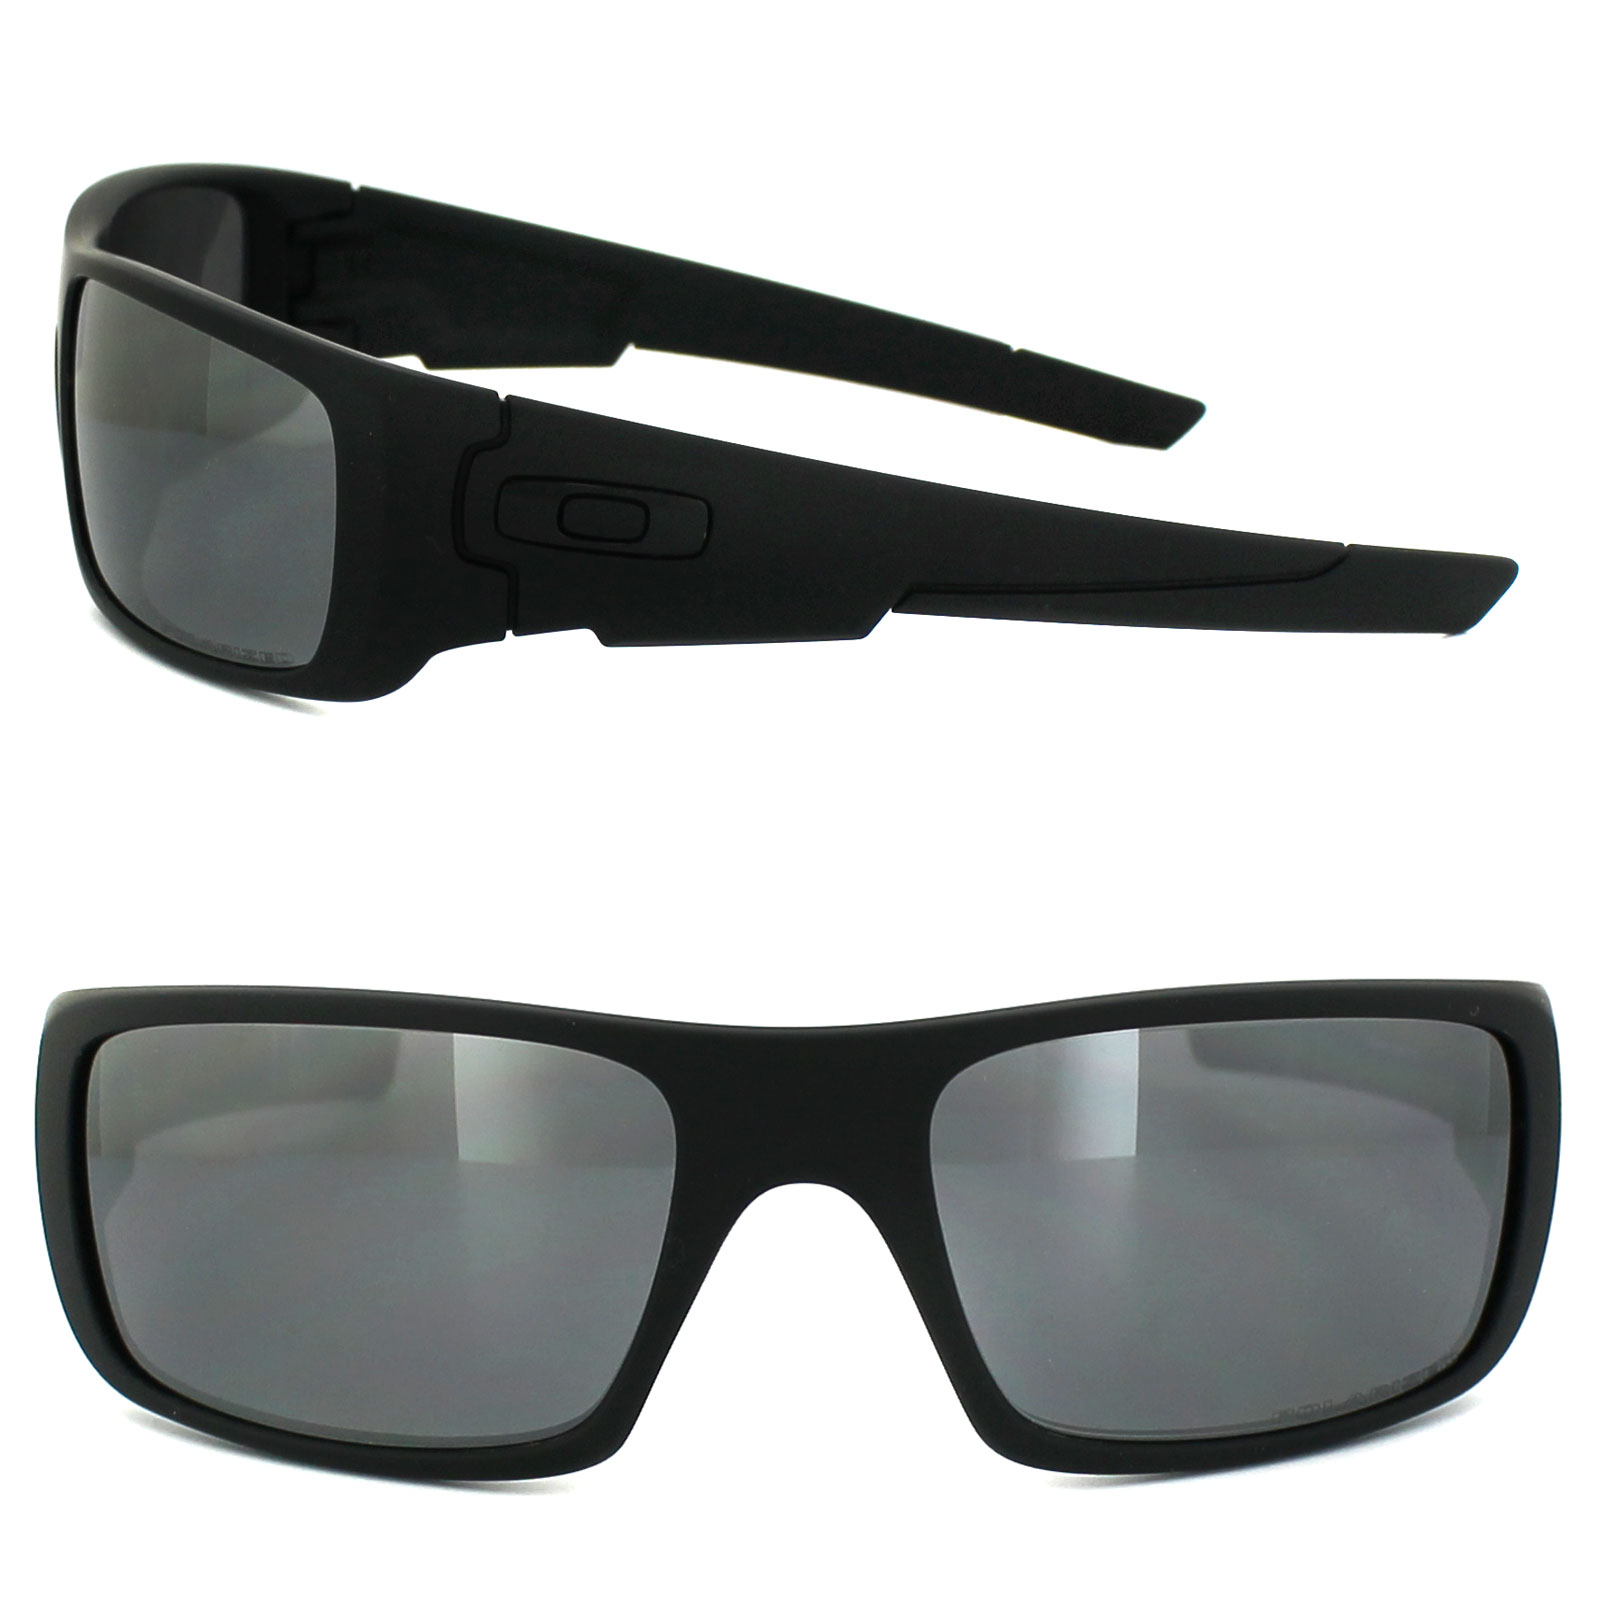 8c31e4944f Sentinel Oakley Sunglasses Crankshaft OO9239-06 Matt Black Black Iridium  Polarized